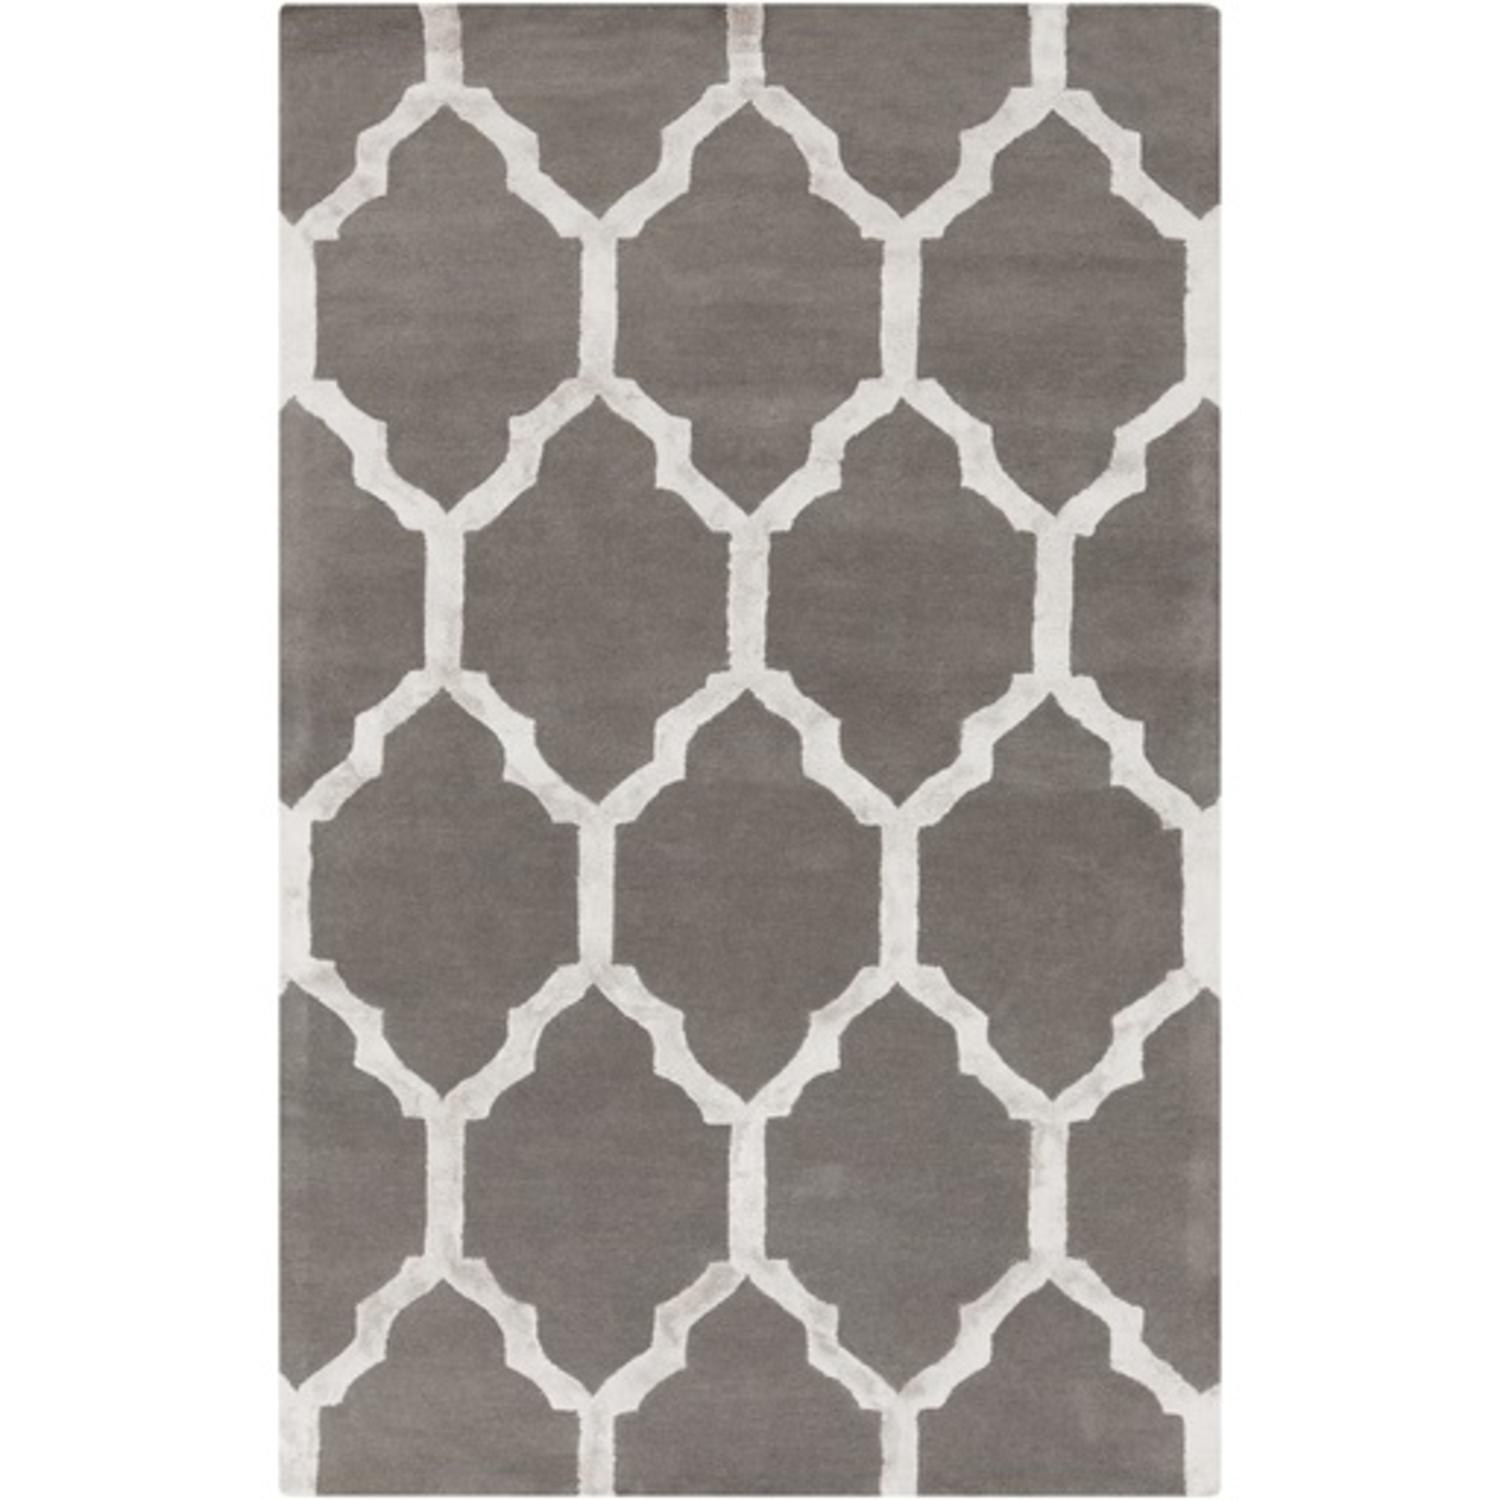 2' x 3' Moroccan Corridors Charcoal Gray and Light Gray Wool Area Throw Rug